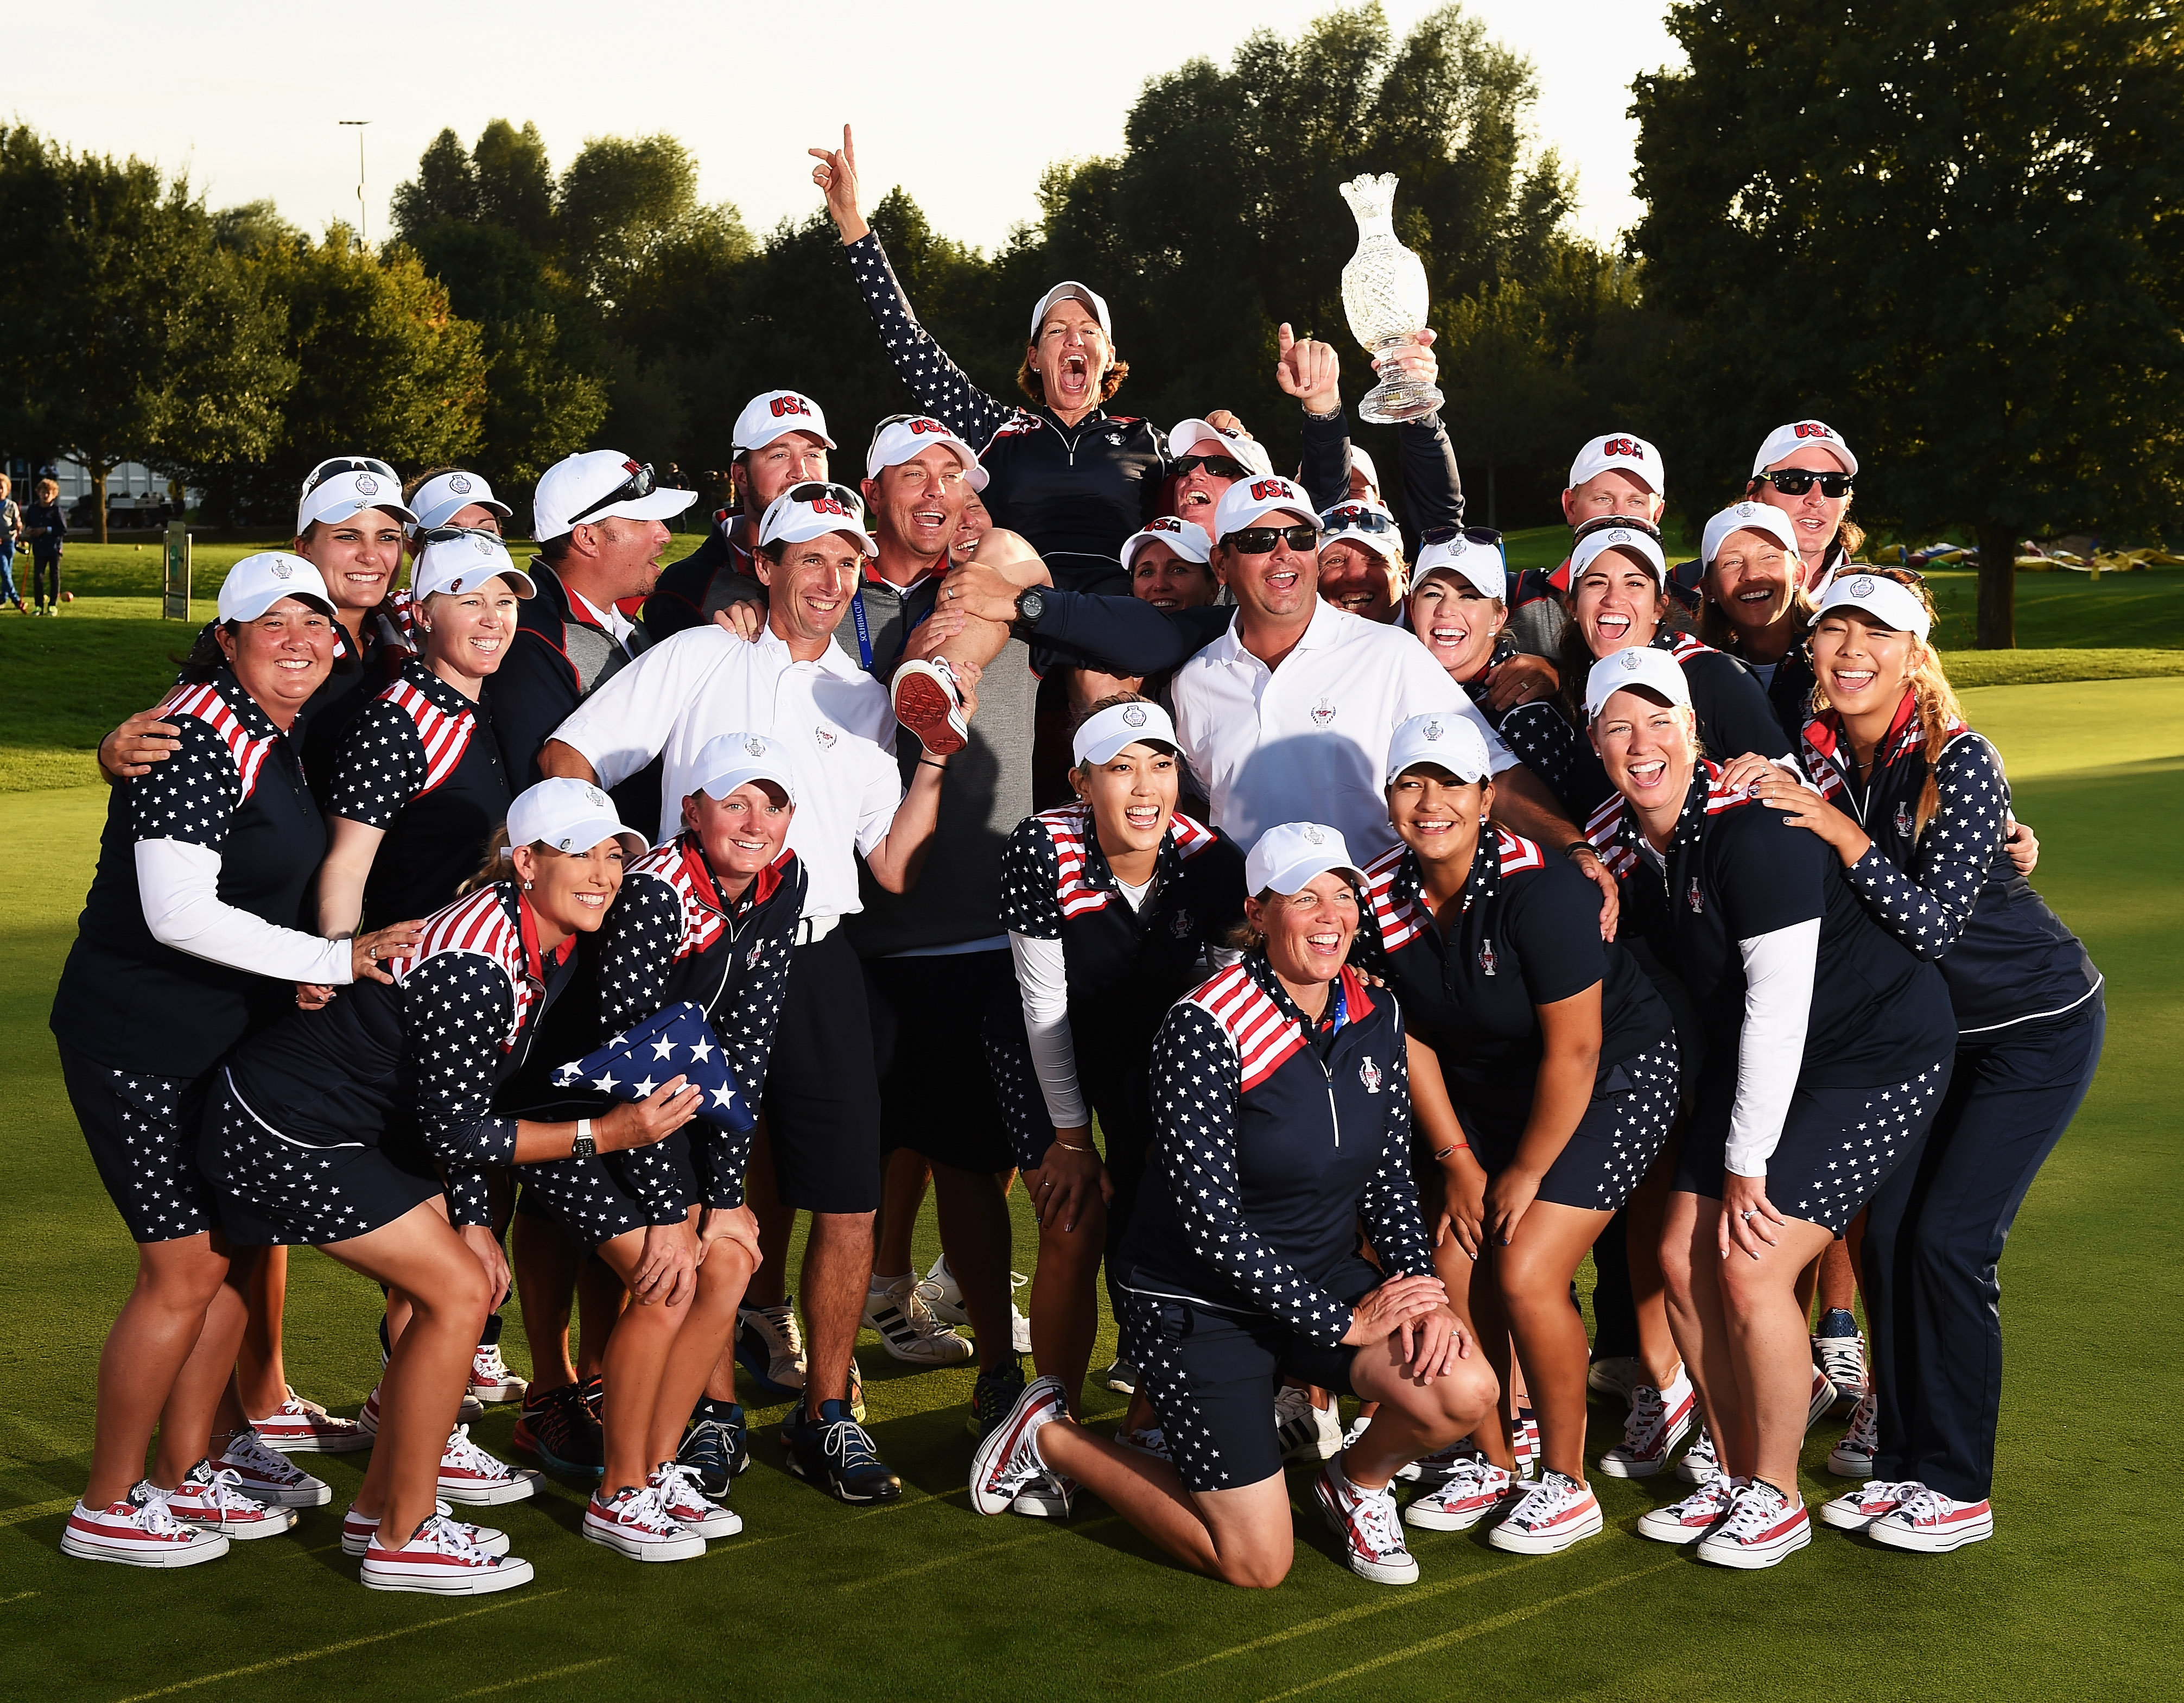 Inkster thought the pod system would help her team gel (Photo: Getty Images)